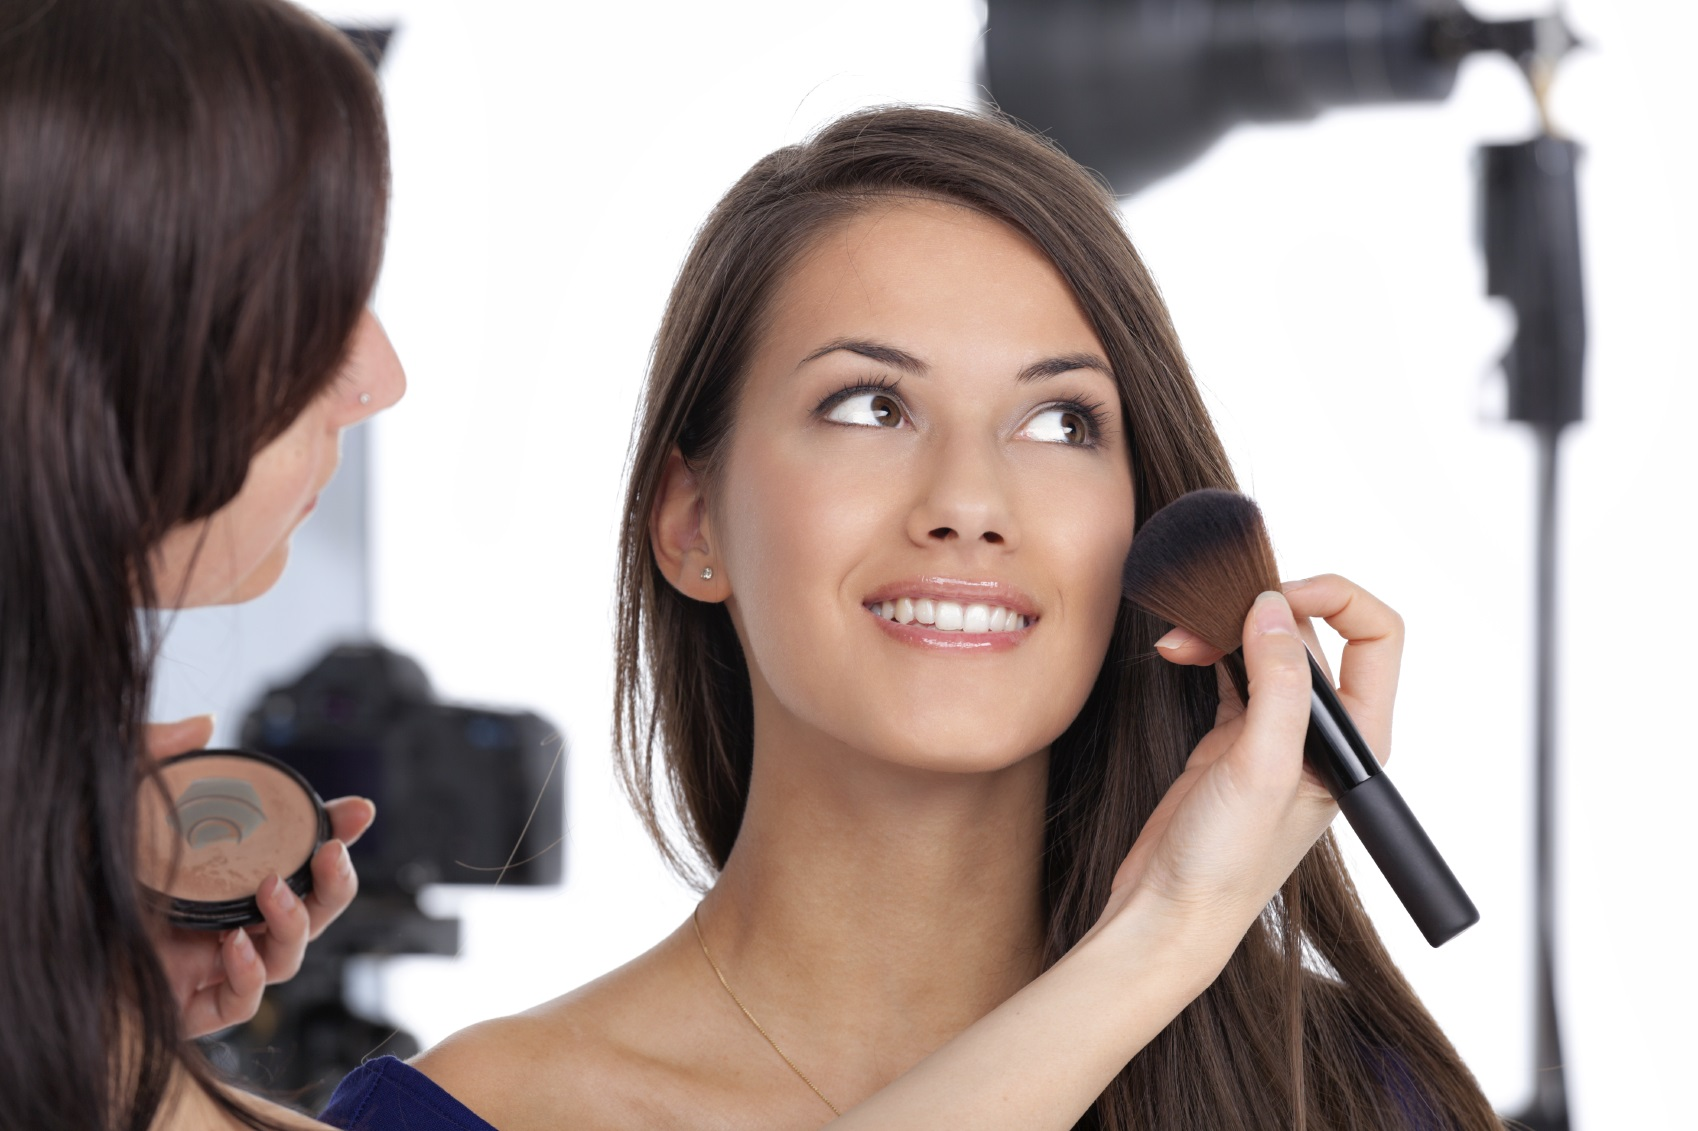 5 Steps to Become a Professional Makeup Artist